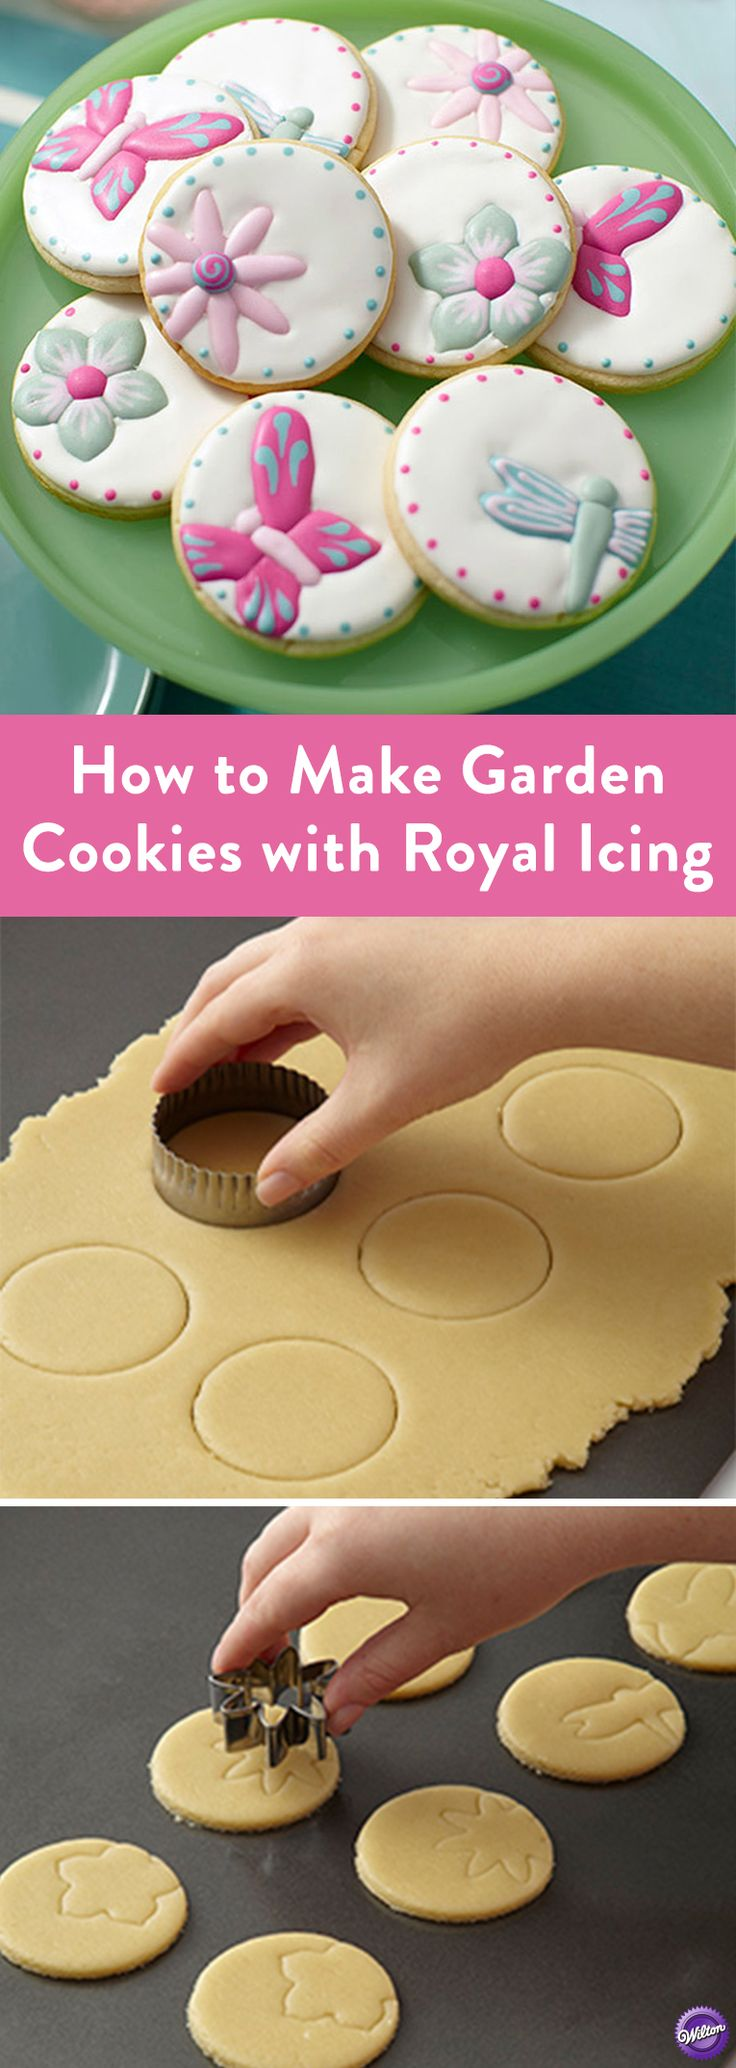 How to Make Garden Cookies with Royal Icing - Using shaped cookie cutters to imprint traceable patterns on sugar cookies? Genius! Use these spring cookie cutter shapes to stamp flower and butterfly prints into dough. Bake and get ready to decorate. Trace the butterfly or flower shape using royal icing and a piping bag to create detailed decorations.